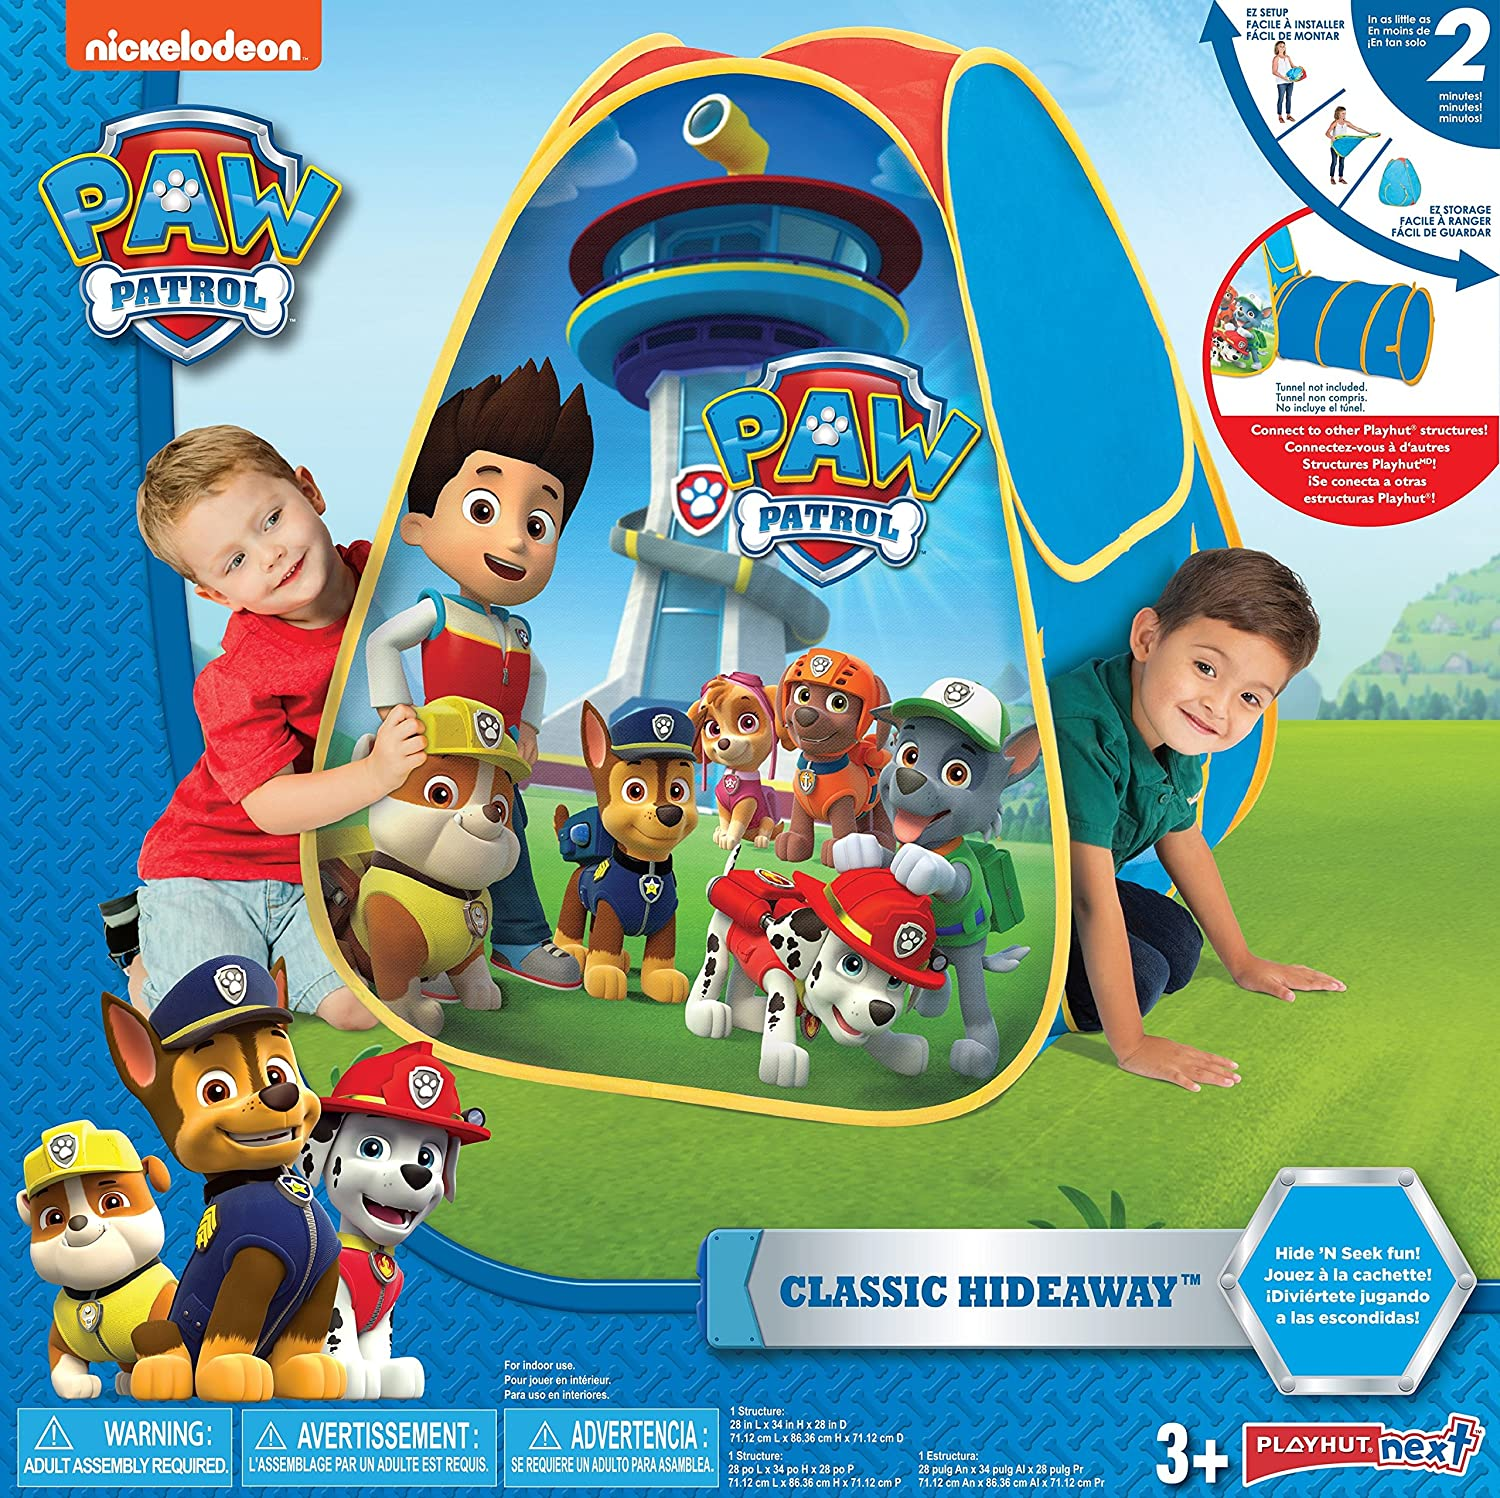 Amazon.com Playhut Paw Patrol Classic Hideaway Playhouse Blue Toys u0026 Games  sc 1 st  Amazon.com : hideaway tent - memphite.com